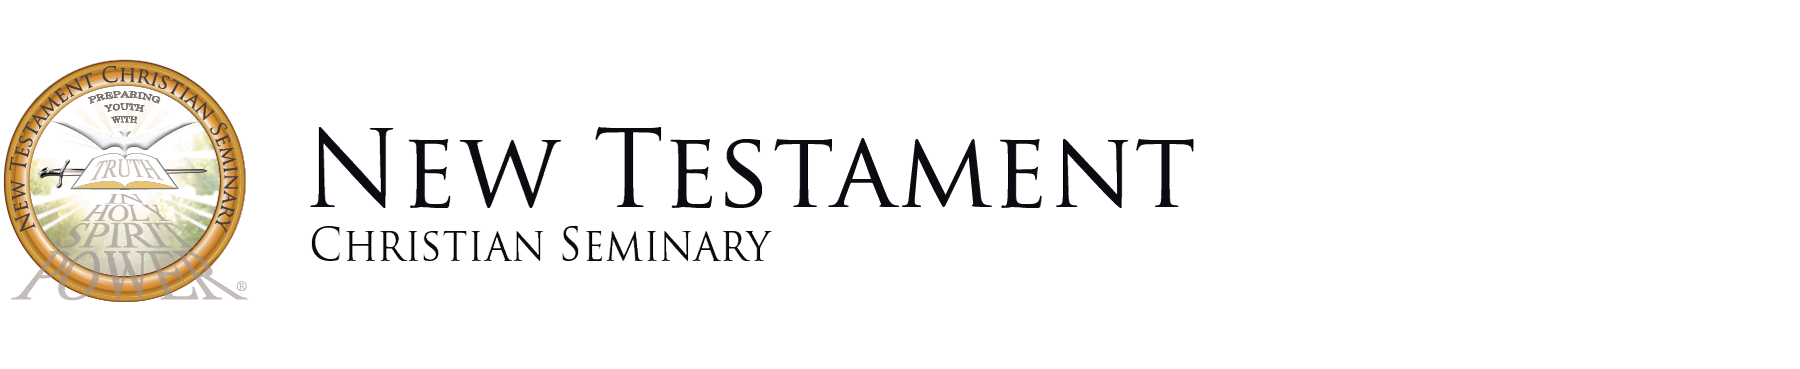 New Testament Christian Seminary Official logo and text